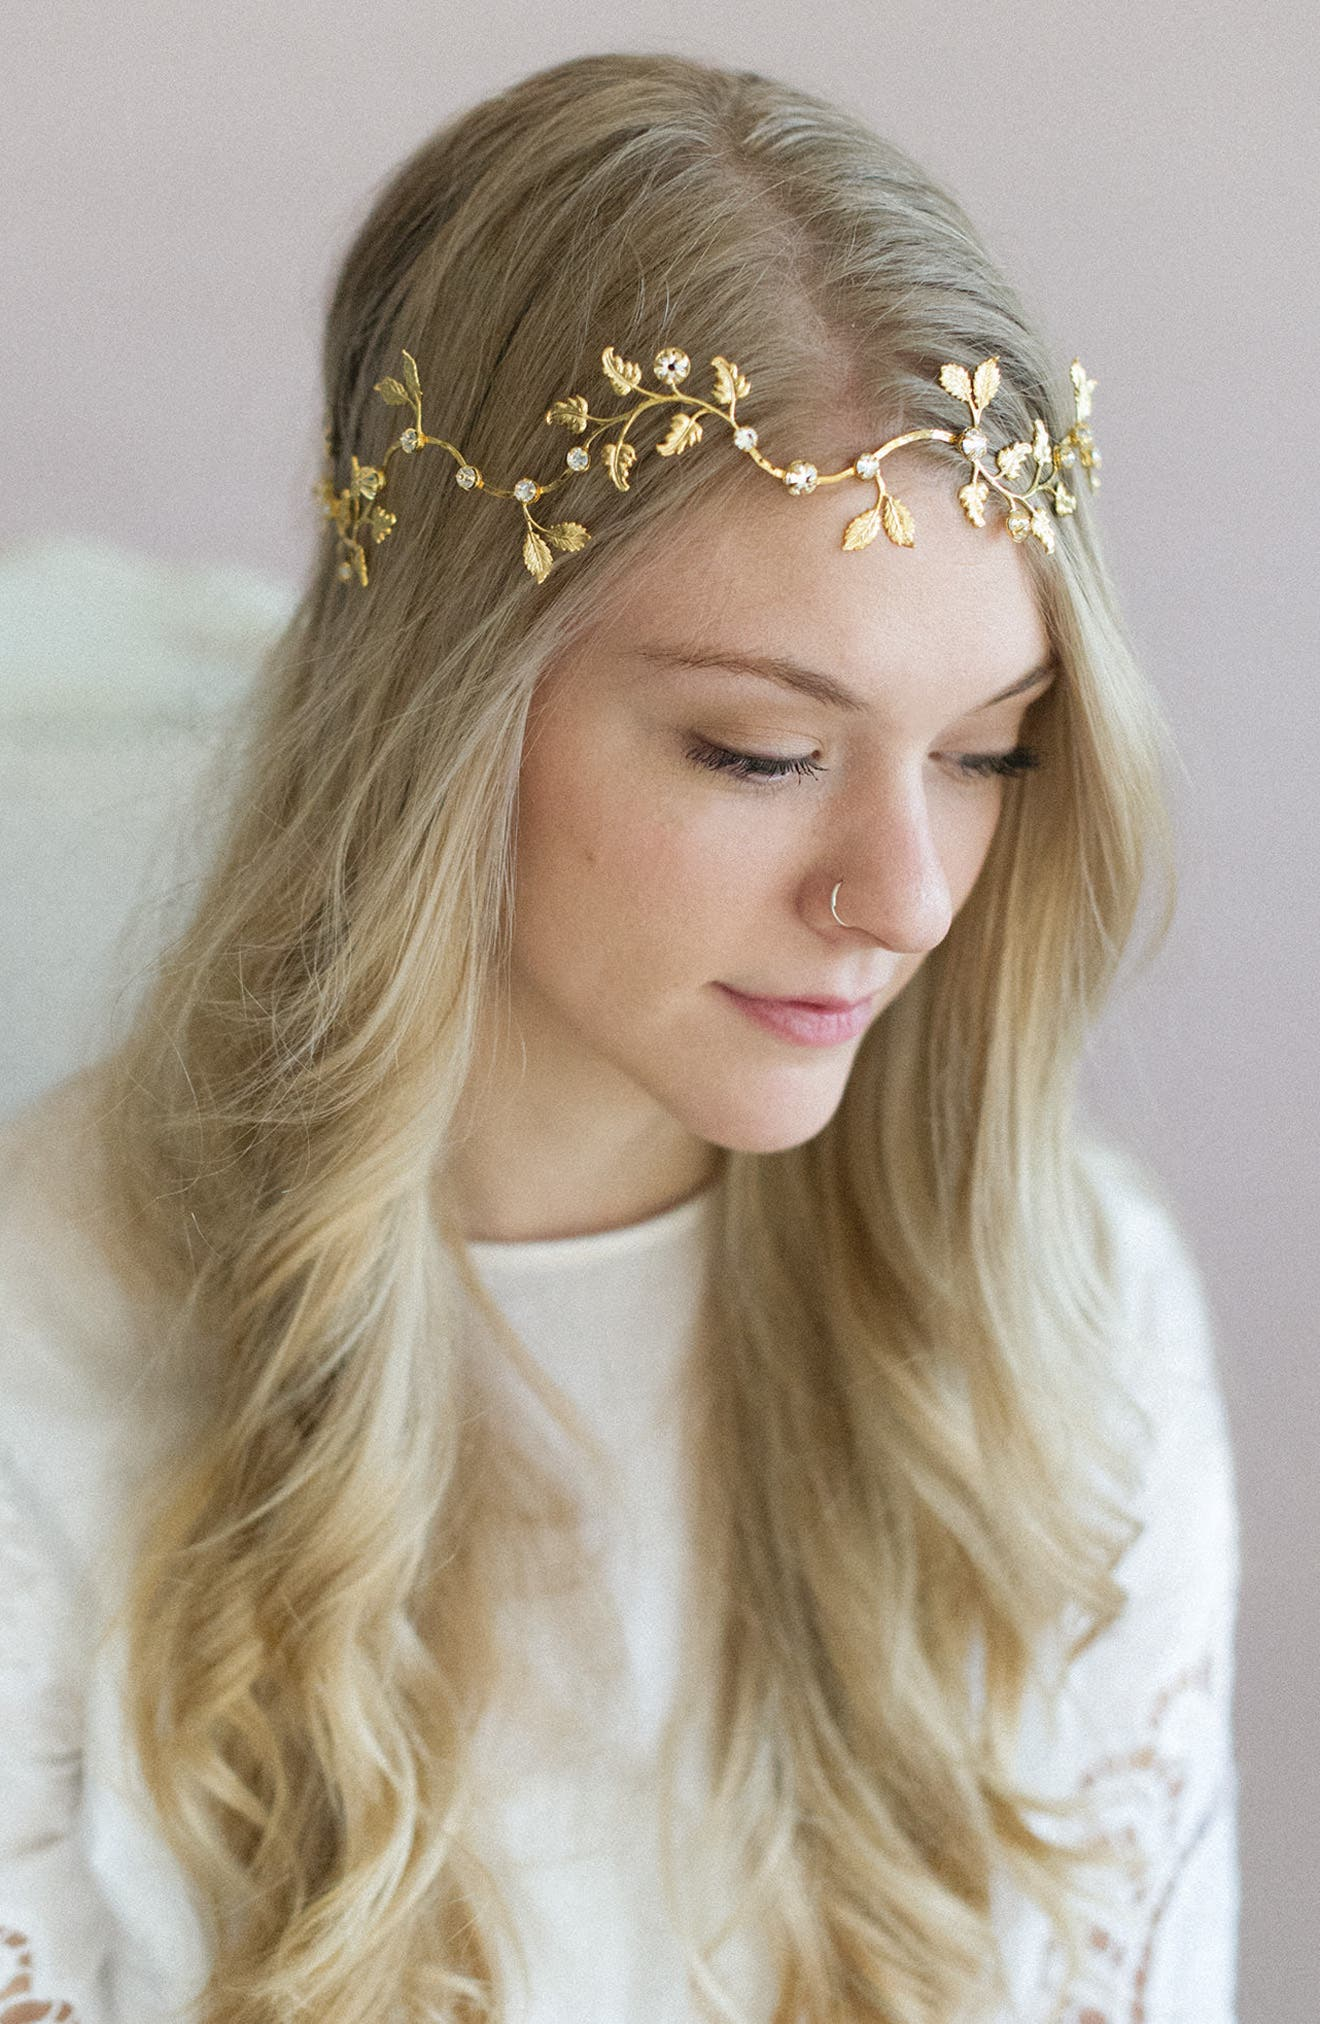 Alternate Image 1 Selected - twigs & honey Dainty Gilded Leaf Headband